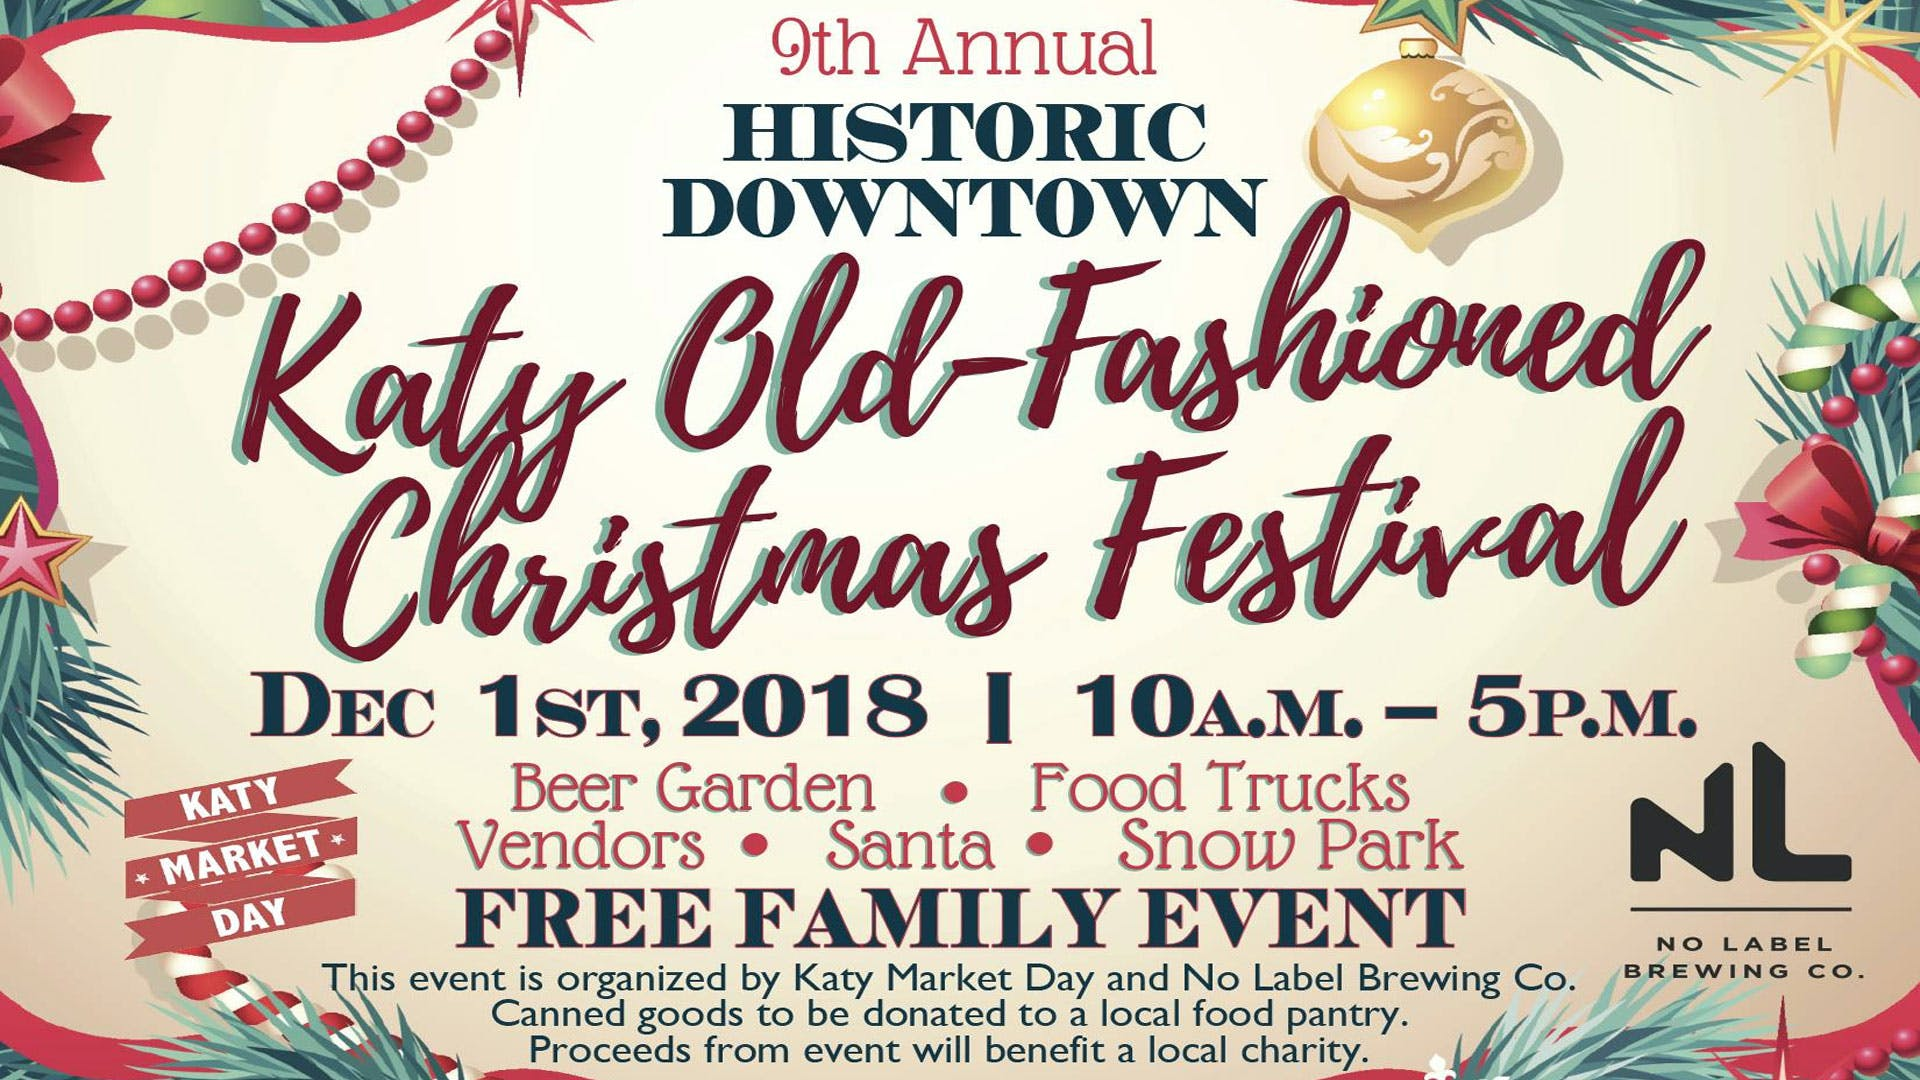 Katy-Old-Fashioned-Christmas-Festival-9th-Annual